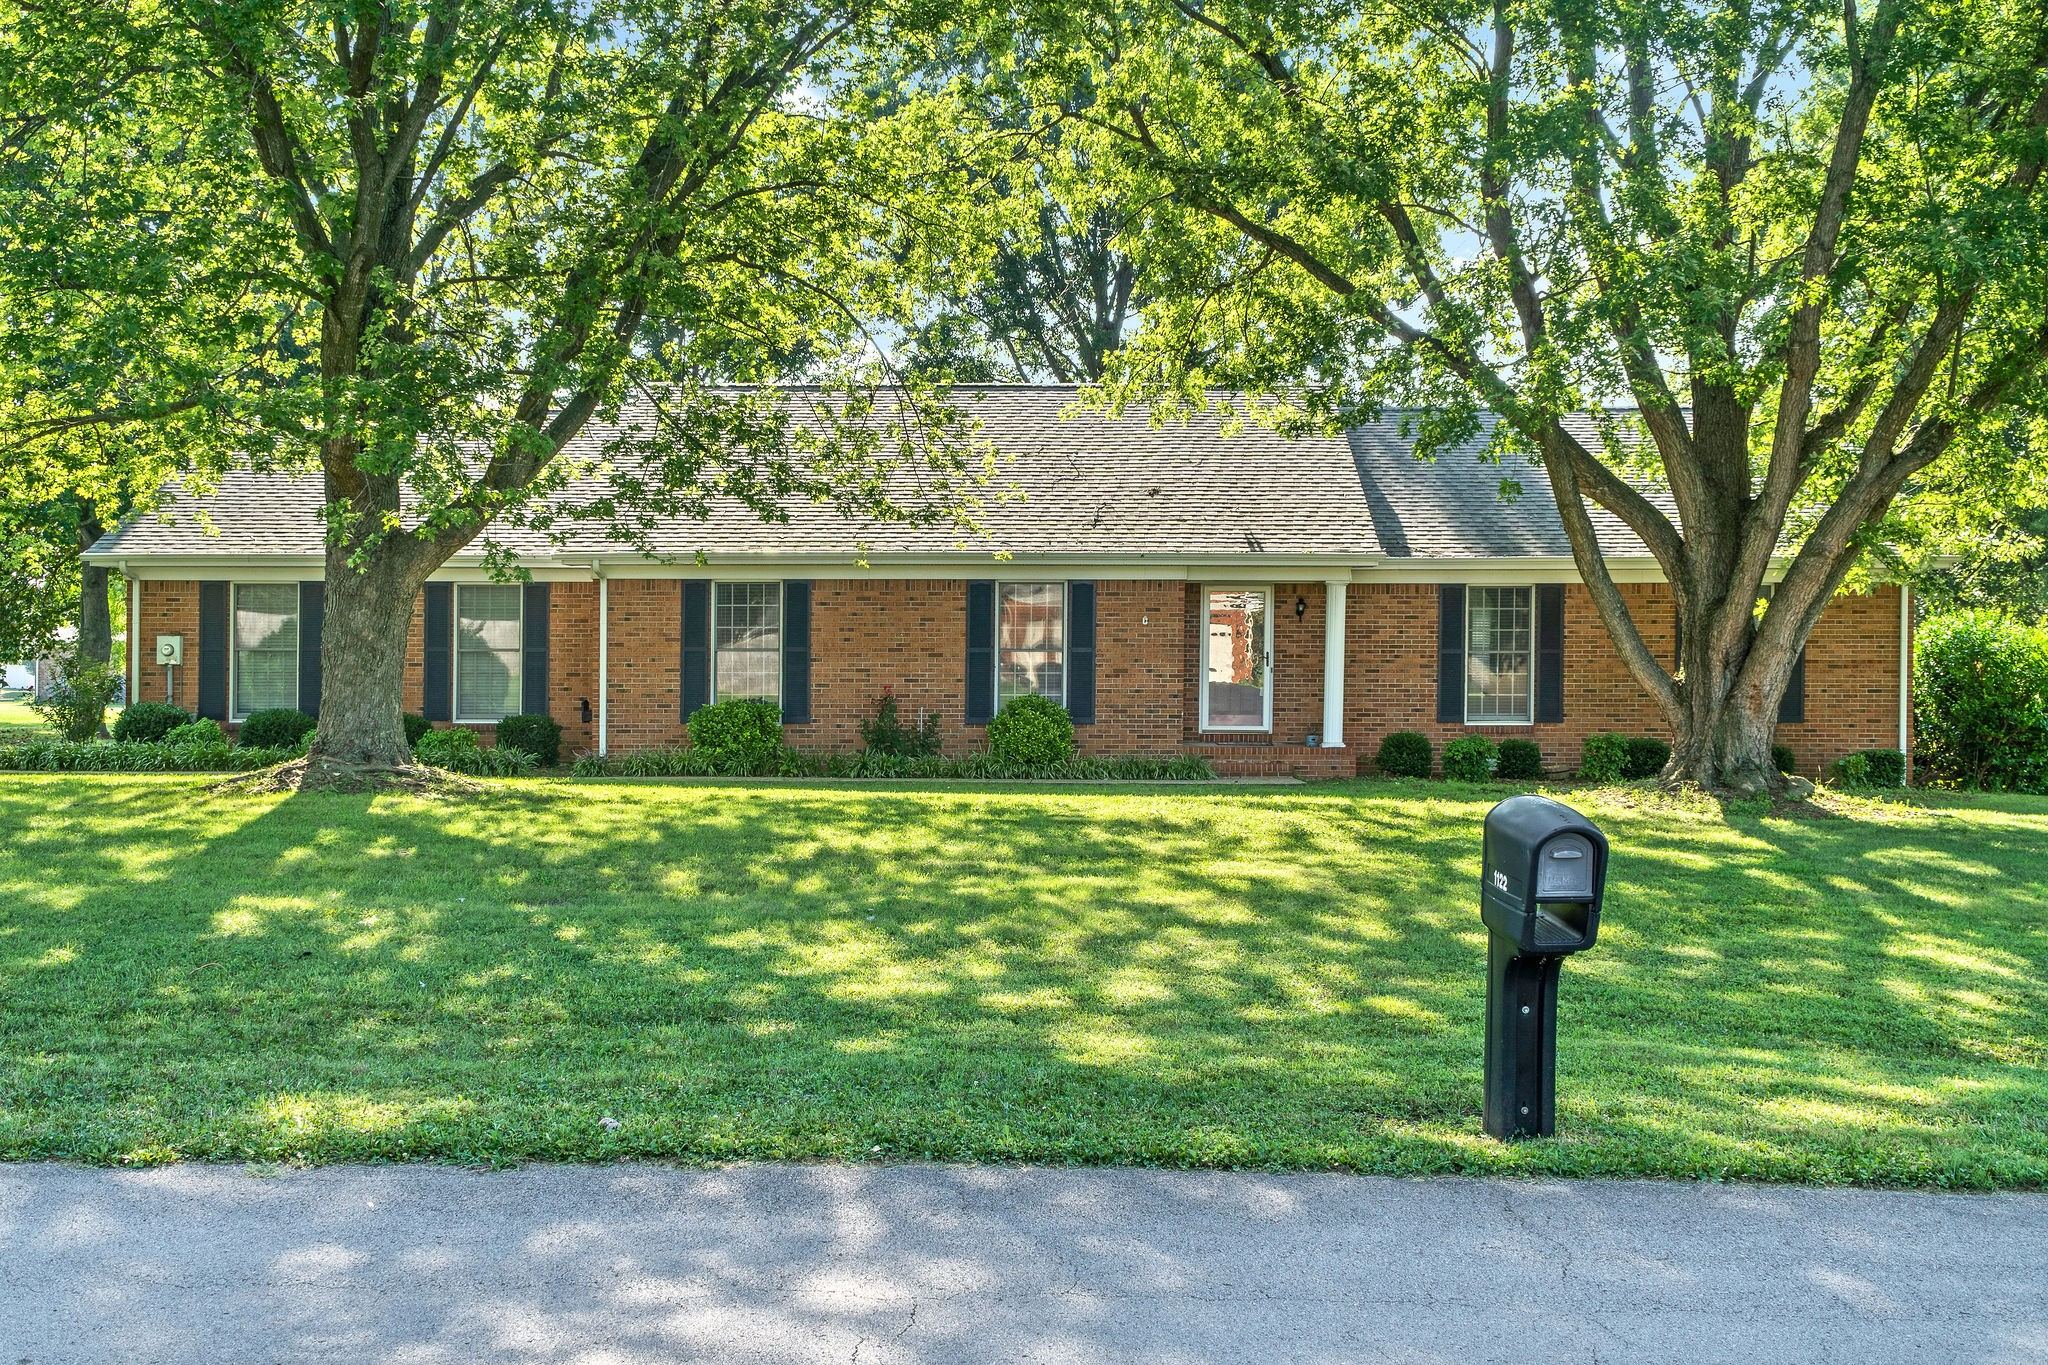 Not finding what you're looking for in TN?  KY is just what the Dr. ordered, peace and tranquility in this lovely ranch style home in a great neighborhood!  If you've been looking for a place to call home look no further.  This 3bdr 2.5 bath home sits on .62 acres, and with over 2200 sqft it has room for days!  Formal dining, great room w/ FP, Kitchen w/plenty of cabinet space, eat in breakfast area, Laundry room, 2 car garage and lots of storage!  Don't sleep on this one it will be sold fast!